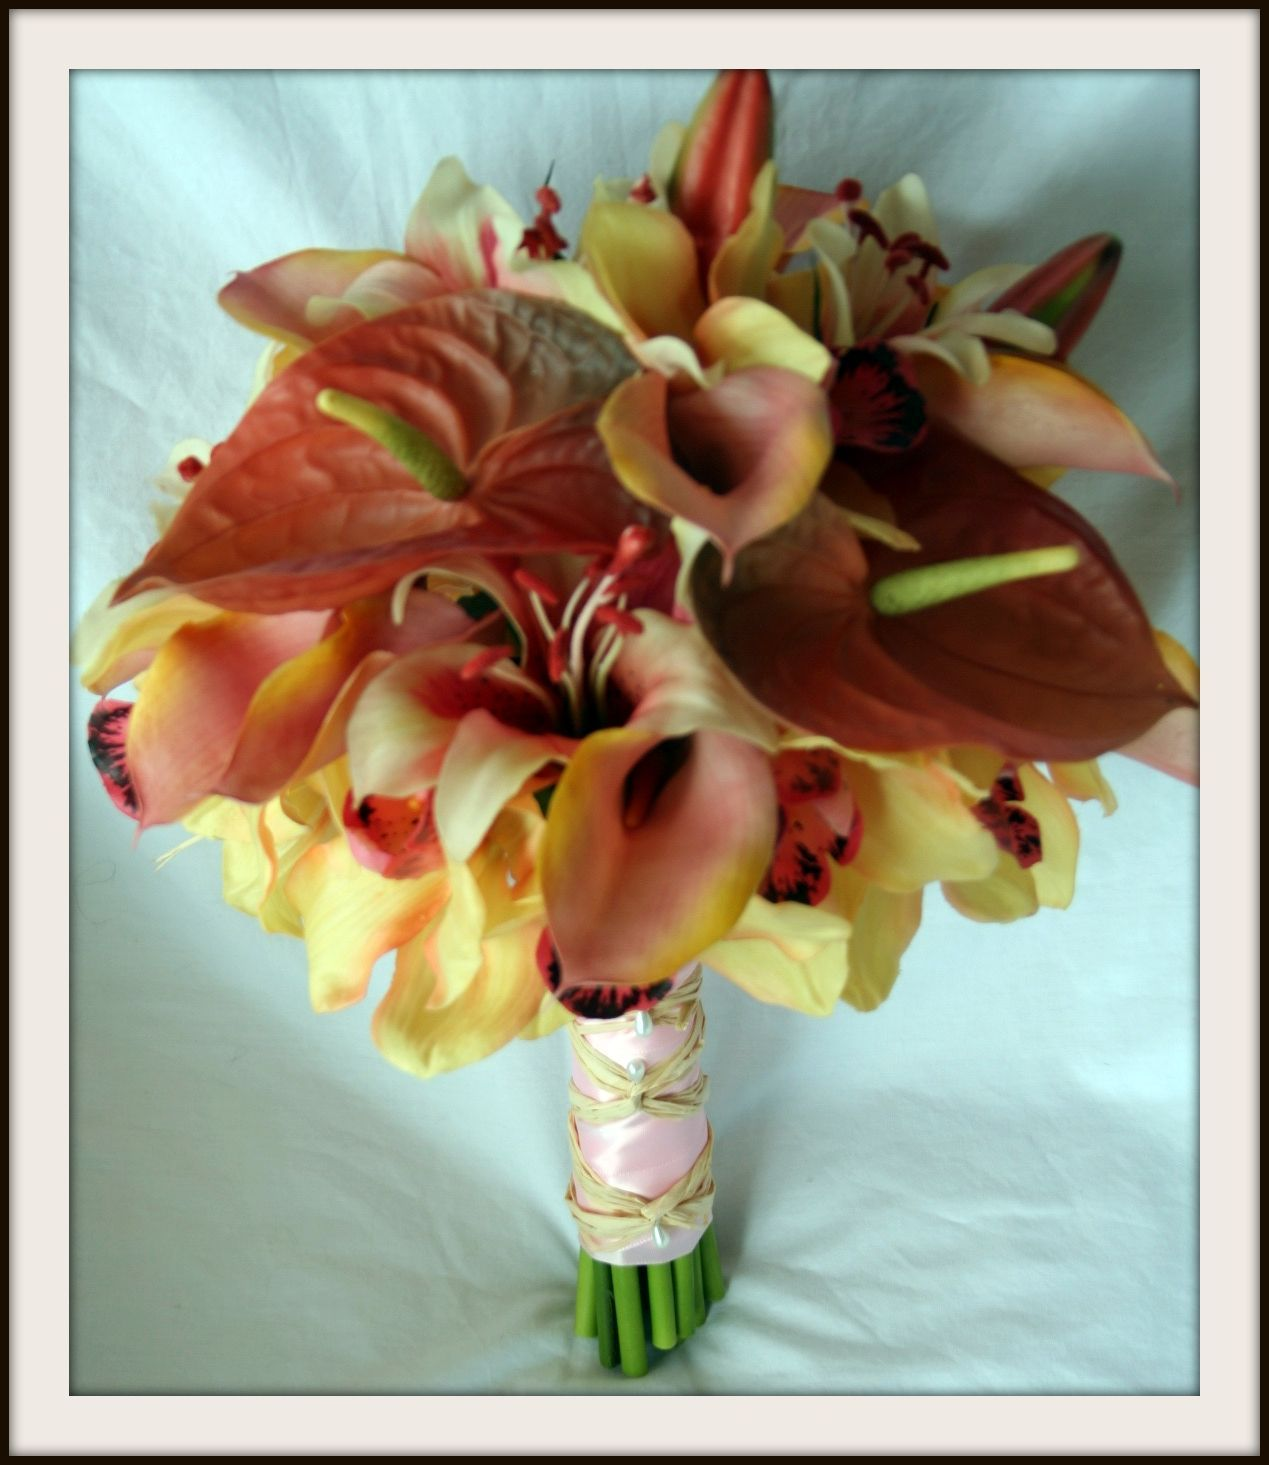 Flowers & Decor, yellow, pink, brown, Bride Bouquets, Flowers, Bouquet, Calla, Lilies, Peach, Orchids, Hand, Tied, Anthurium, Shavons wedding silks